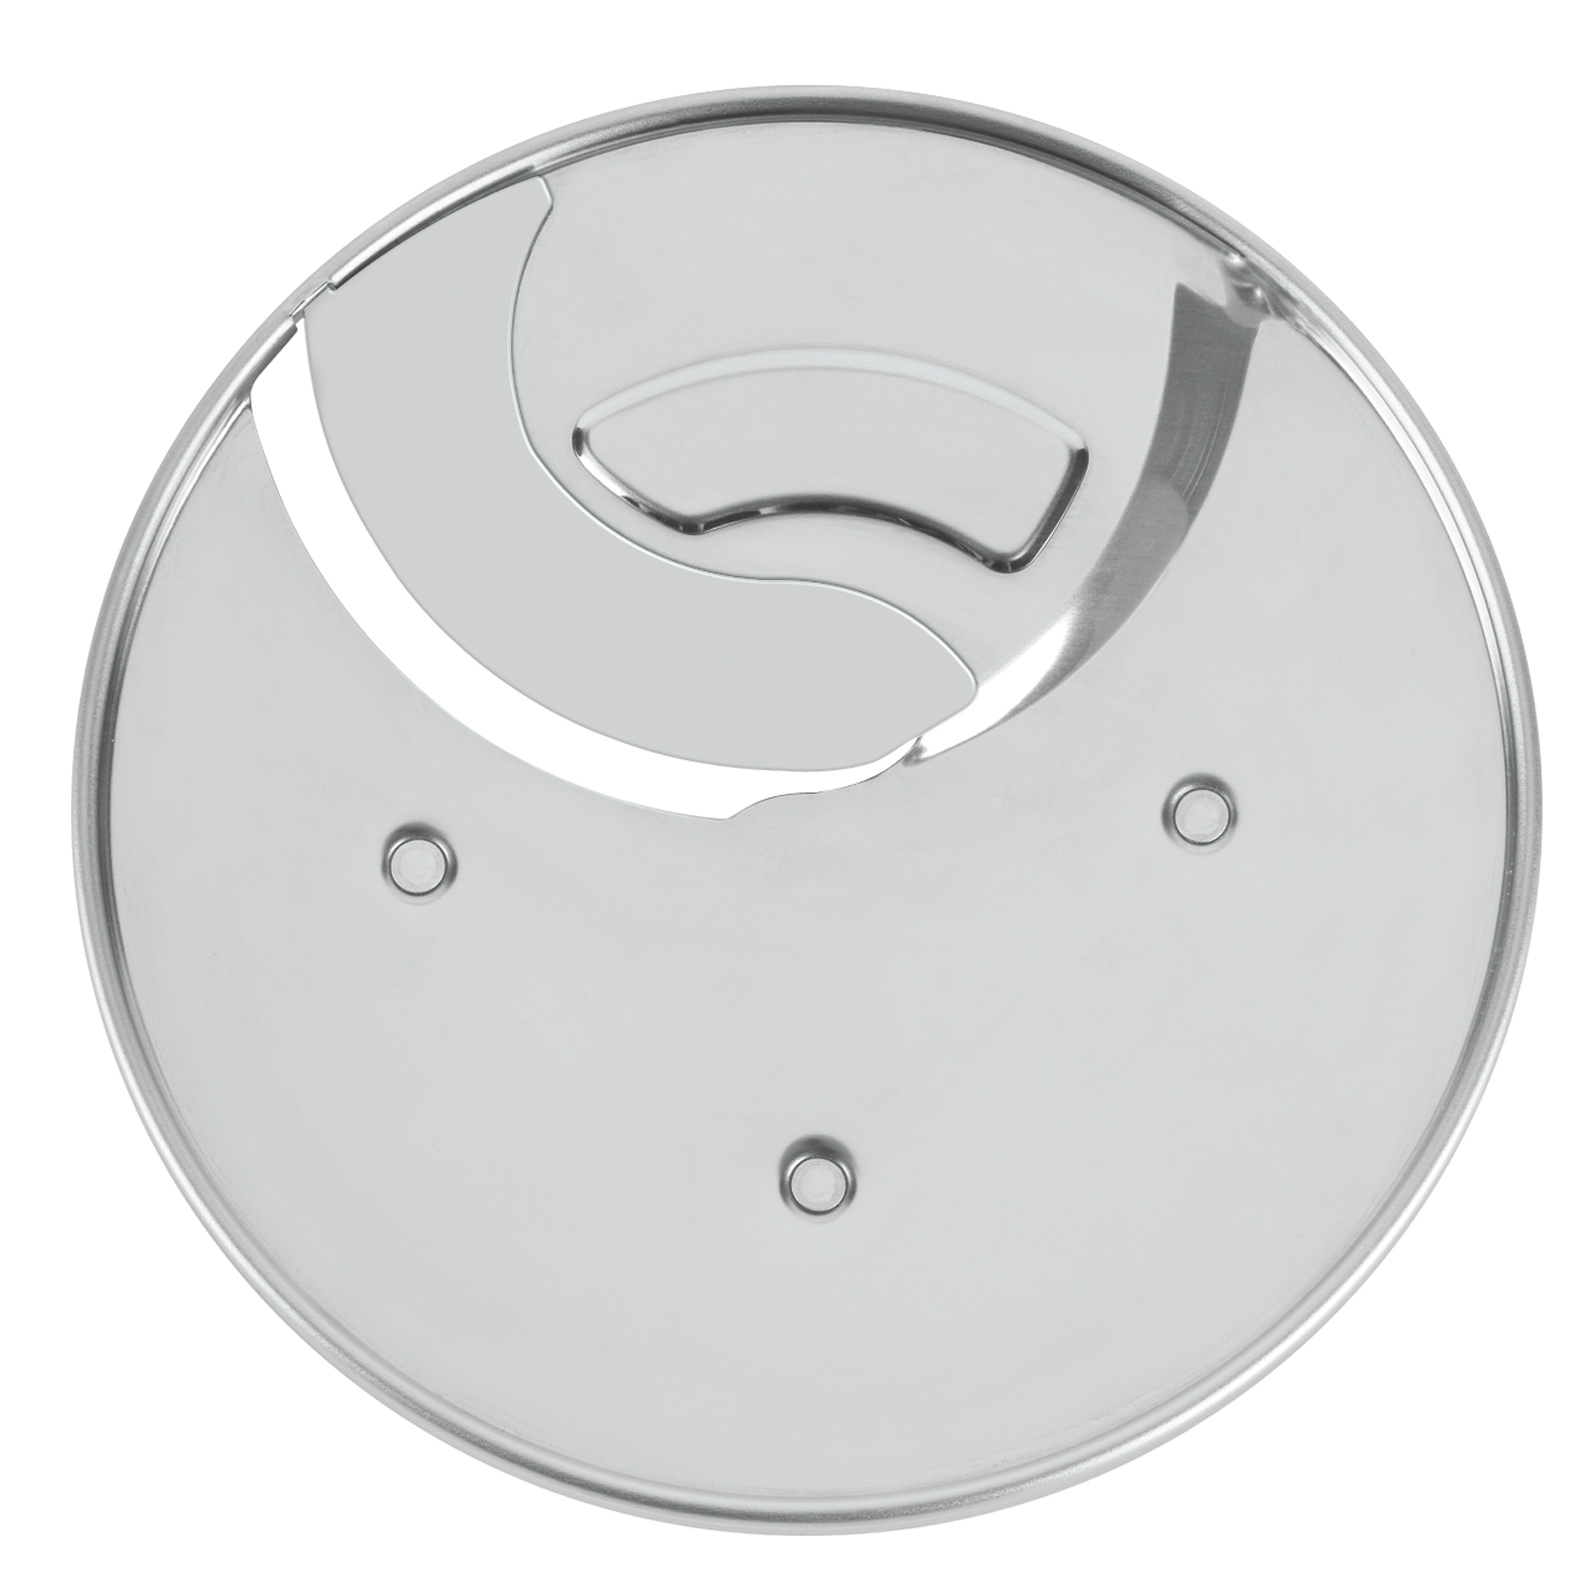 Waring WFP117 food processor, disc plate, slicing